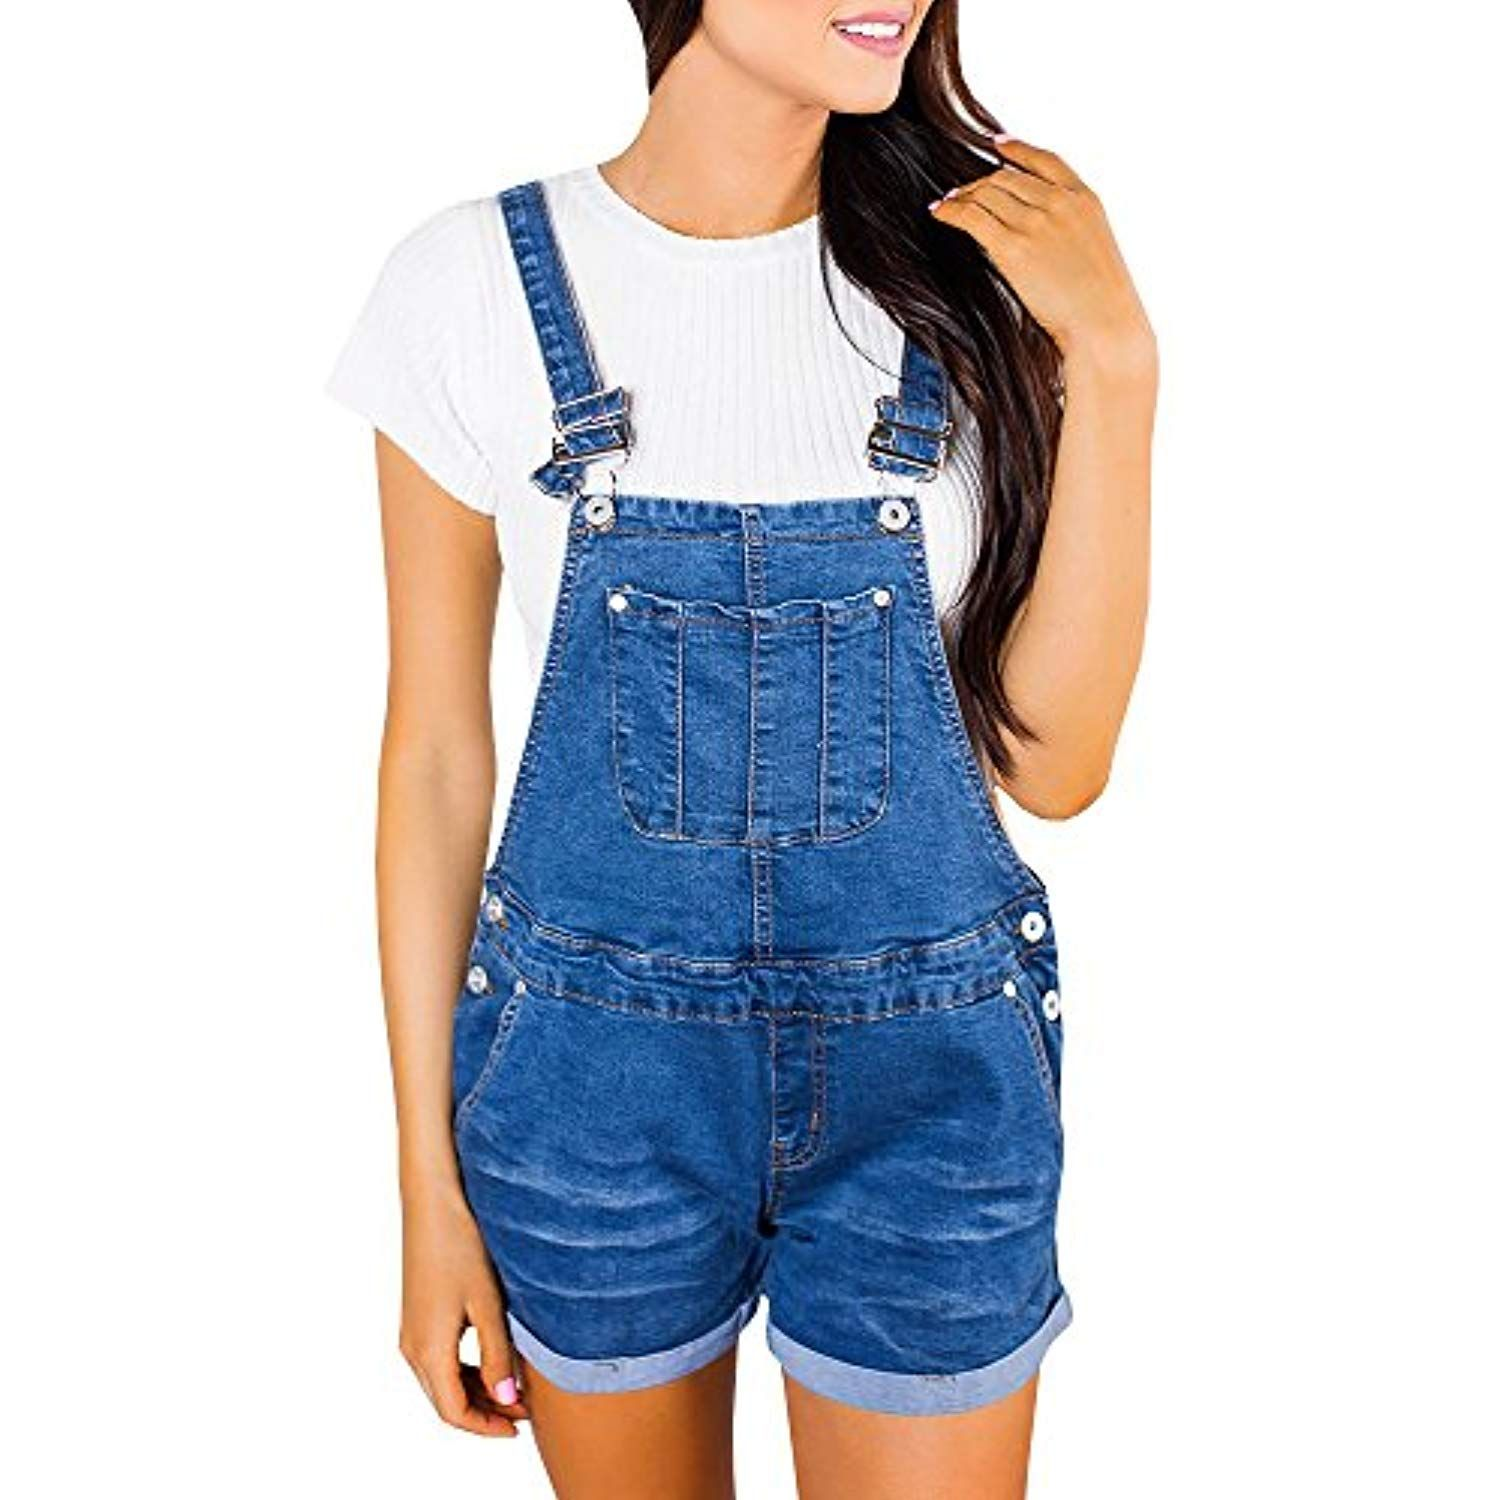 New Womens Ripped Distressed Pouch Pocket Cotton Denim Buttoned Dungaree Shorts Jumpsuits & Rompers